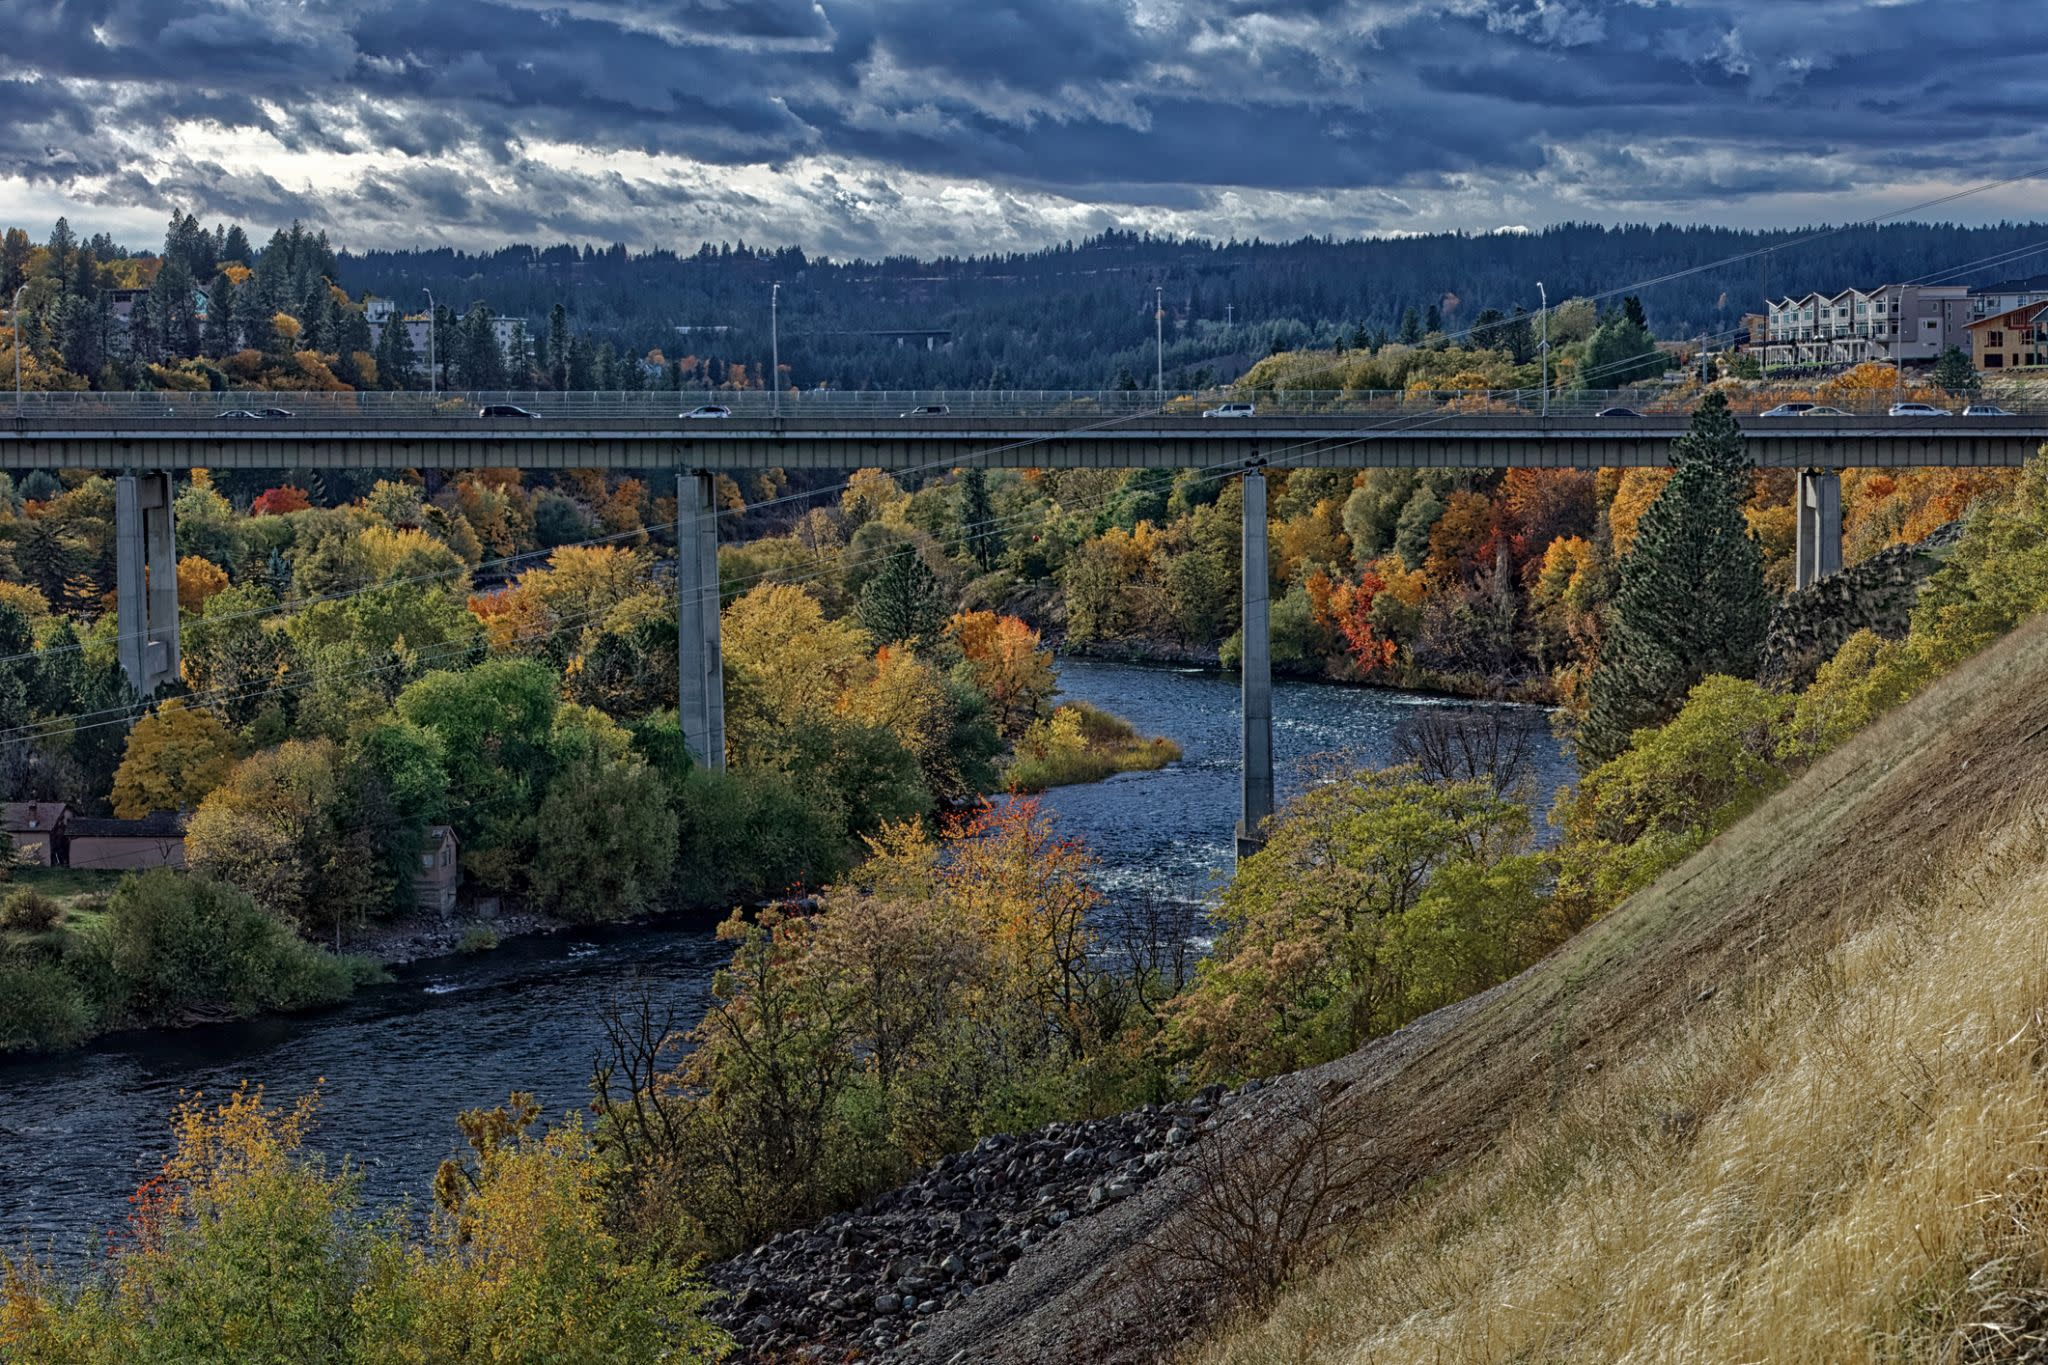 Spokane is for walking. The Lilac City used a 1974 World's Fair to spruce up its riverfront into an urban park environment, while outside of town, 11,000-plus acre Riverside State Park offers a centennial trail, a museum, a natural area plus a wonderful arboretum. In a wider sense, athletic events are Spokane's major draw. Six thousand teams, playing in 422 courts, participate in the Spokane Hoopfest. The 44-year-0ld Bloomsday run, held in June, draws 40,000 to 50,000 participants.